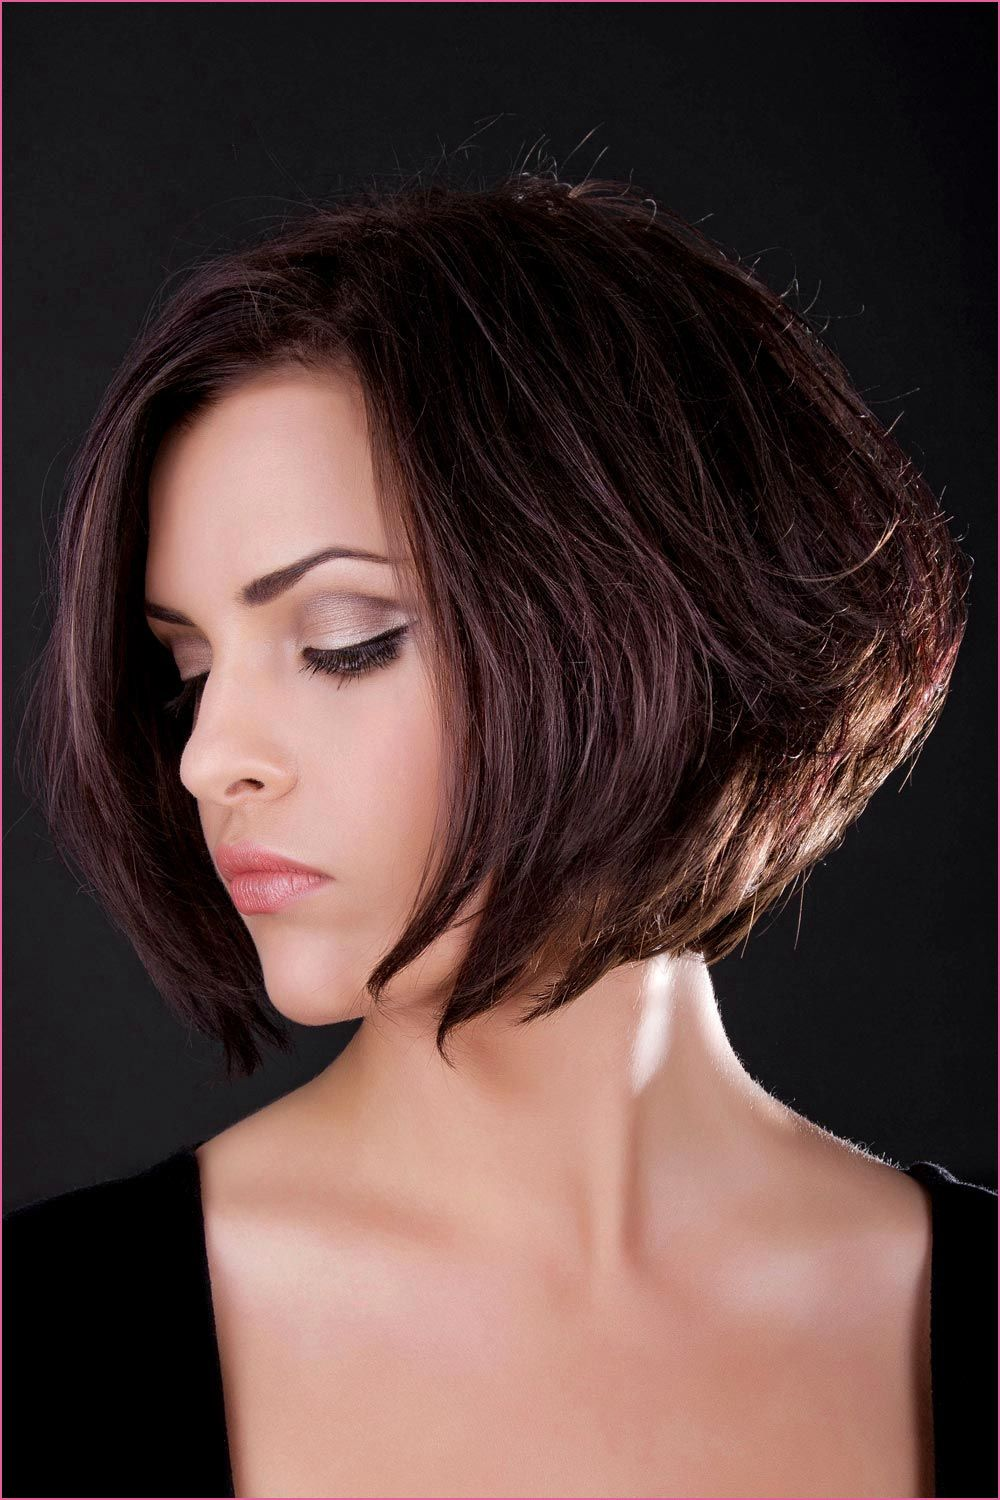 Frisuren Testen Manner Frisuren Testen Manner Frisuren Testen Manner Inspirierende Frisuren Mollige Ges Cool Hairstyles Cool Easy Hairstyles Bob Hairstyles